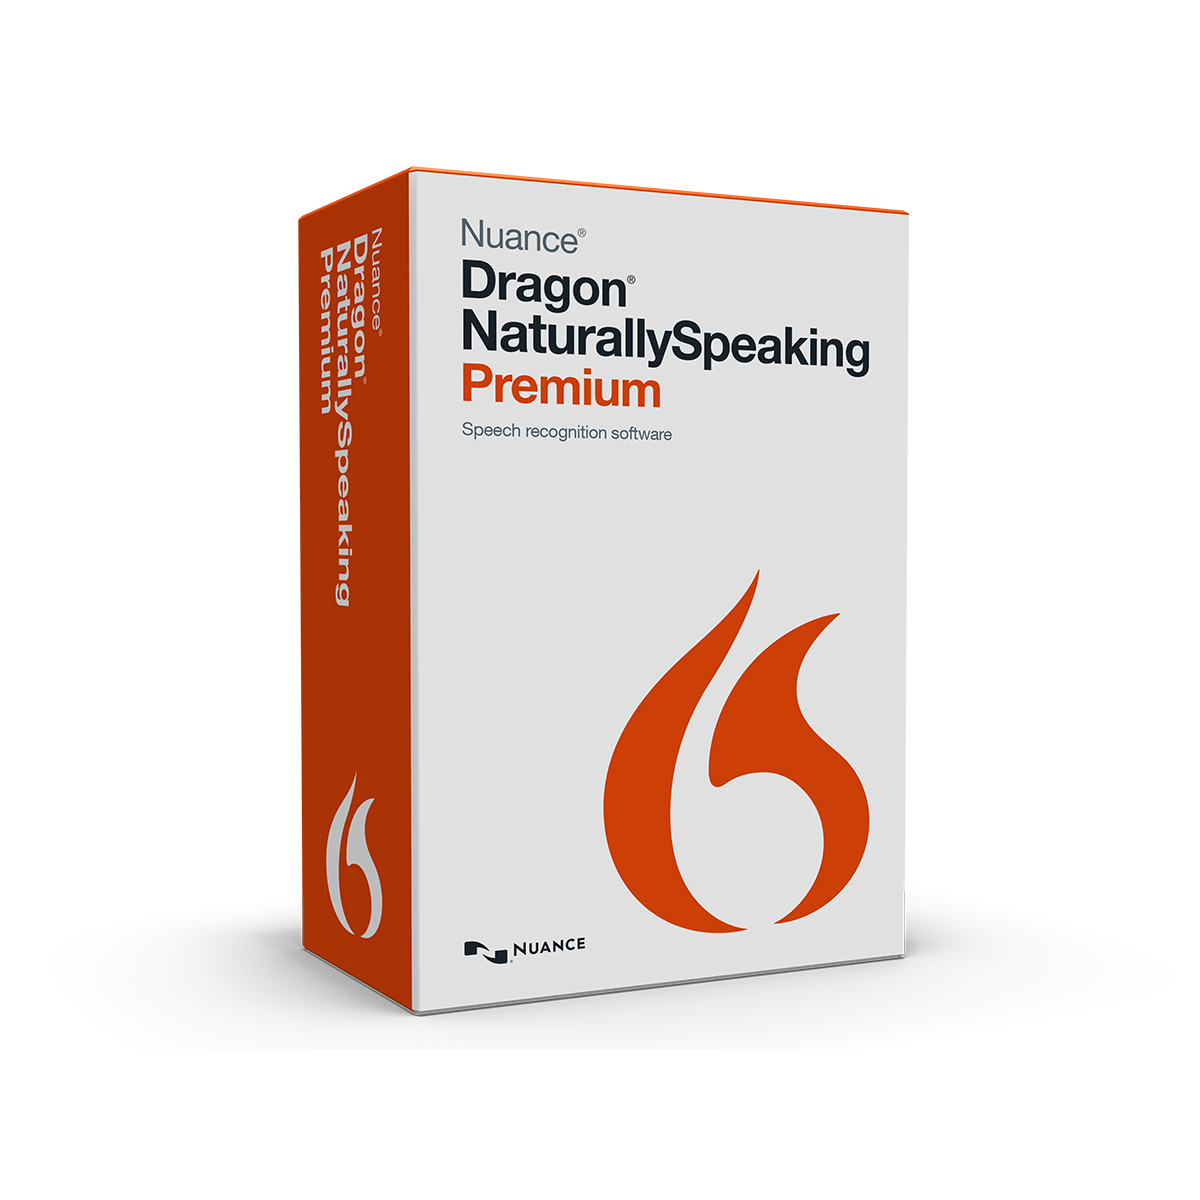 Nuance Dragon NaturallySpeaking Premium 13.0 International English